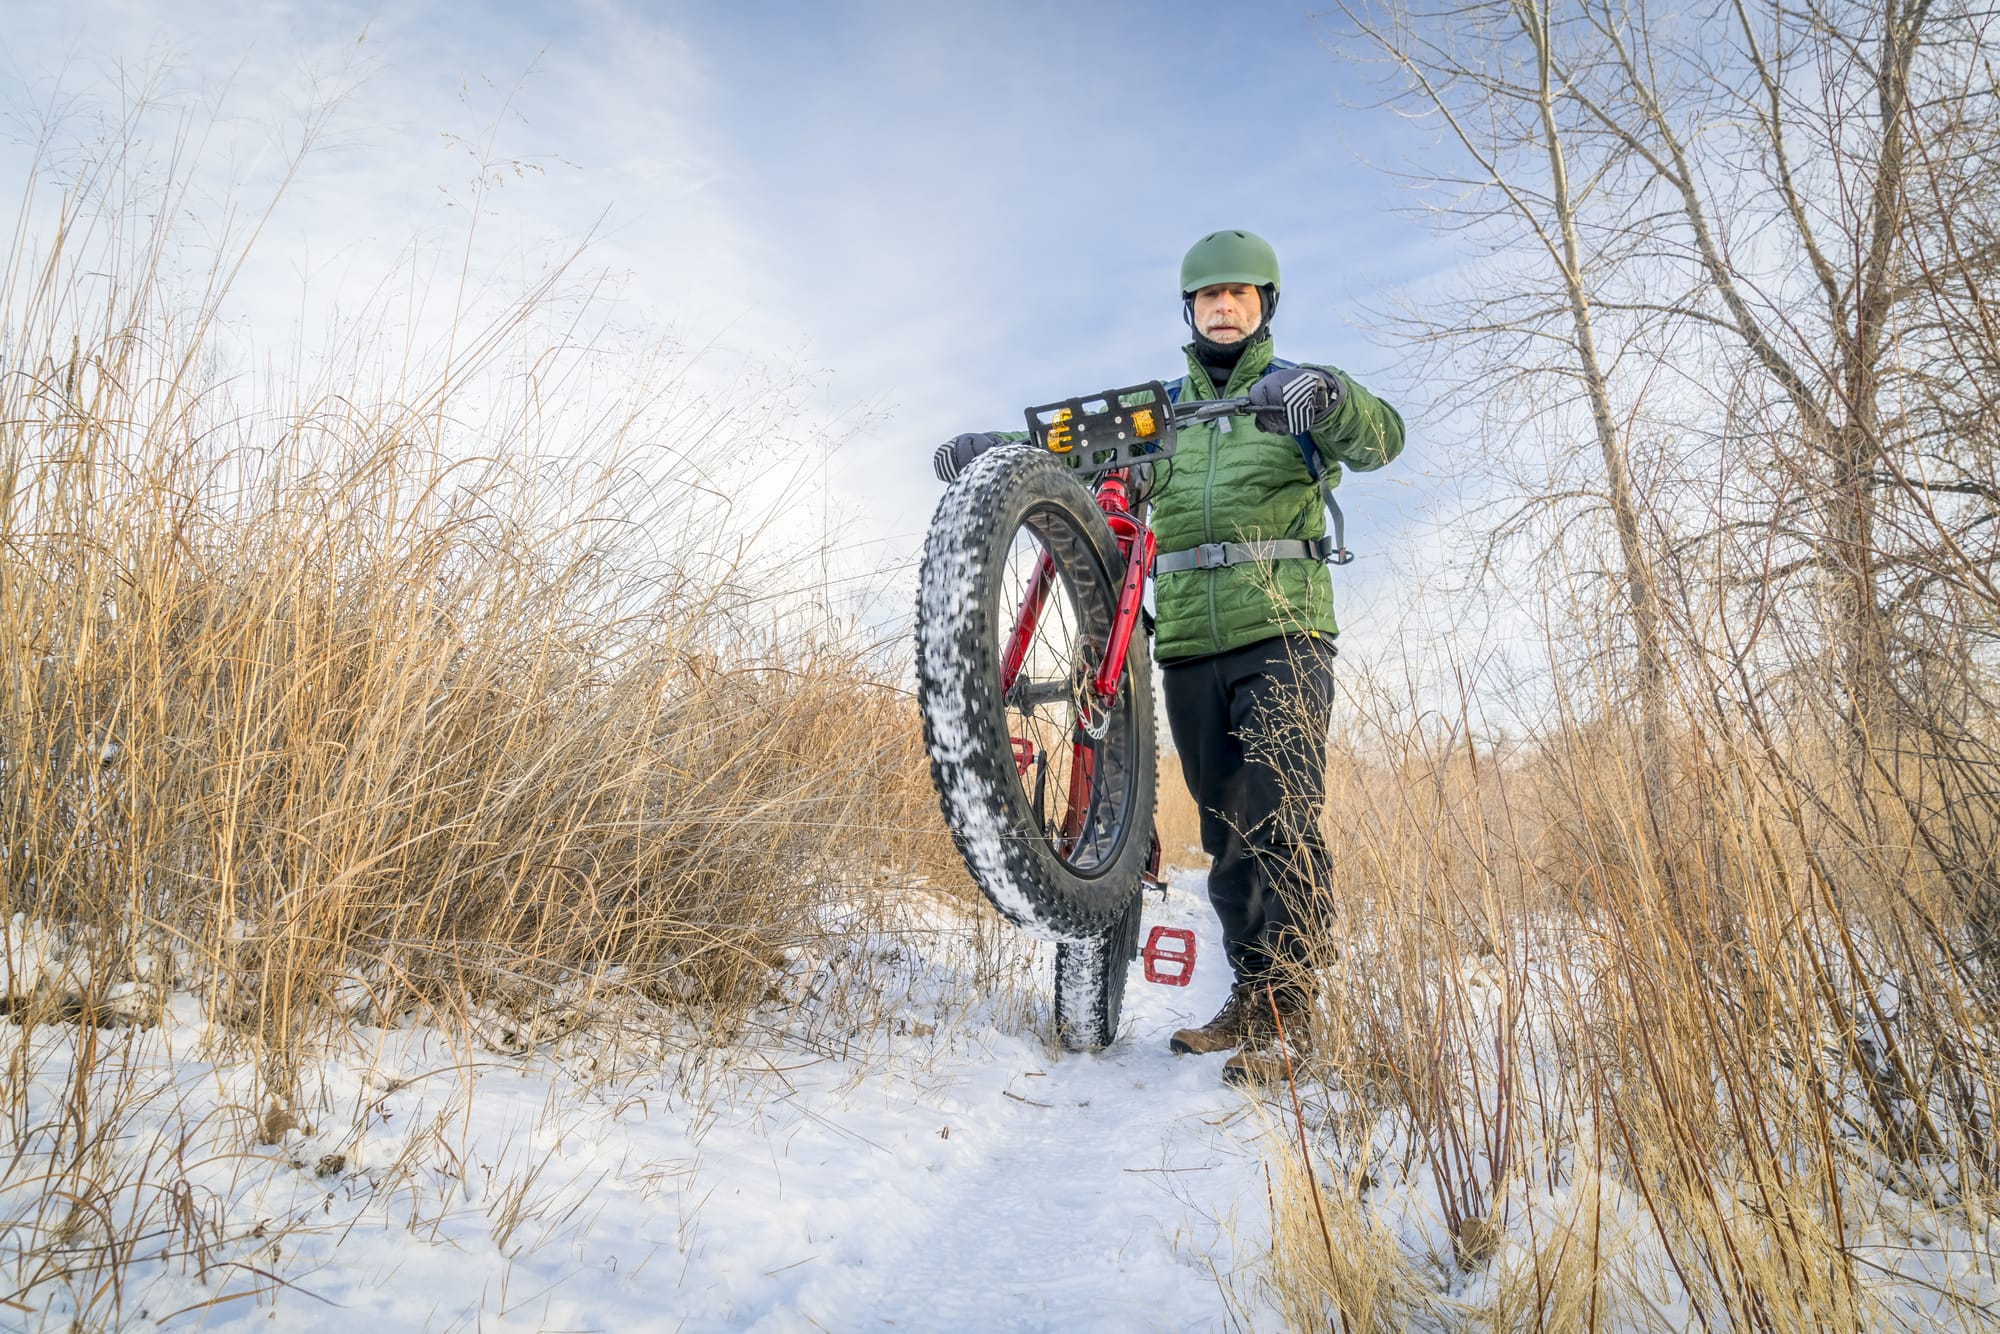 activites-plein-air-confinement-fatbike